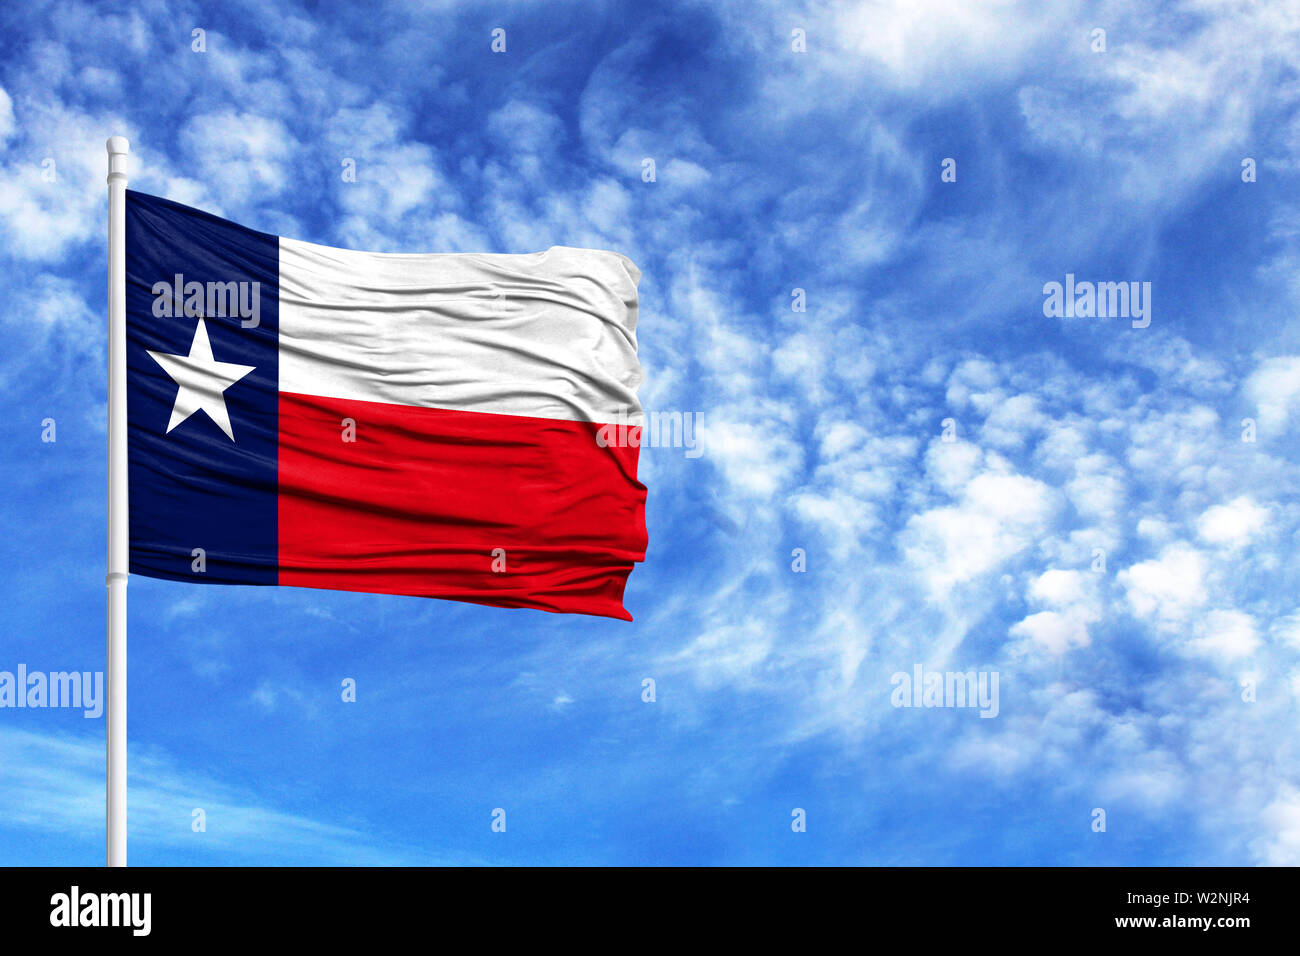 National flag State of Texas on a flagpole in front of blue sky - Stock Image